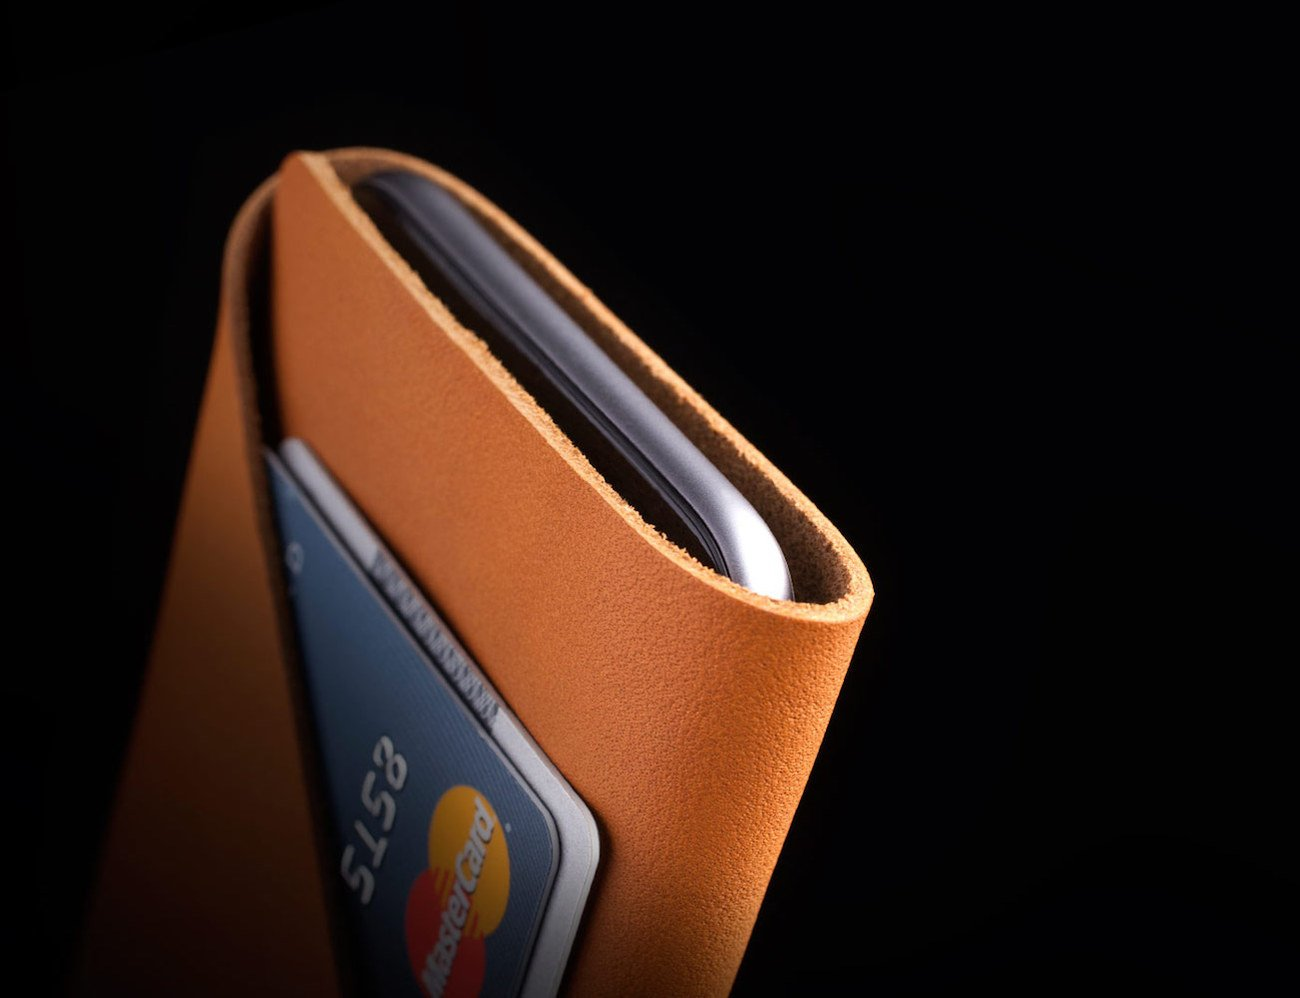 Leather Wallet Sleeve for iPhone 6S By Mujjo